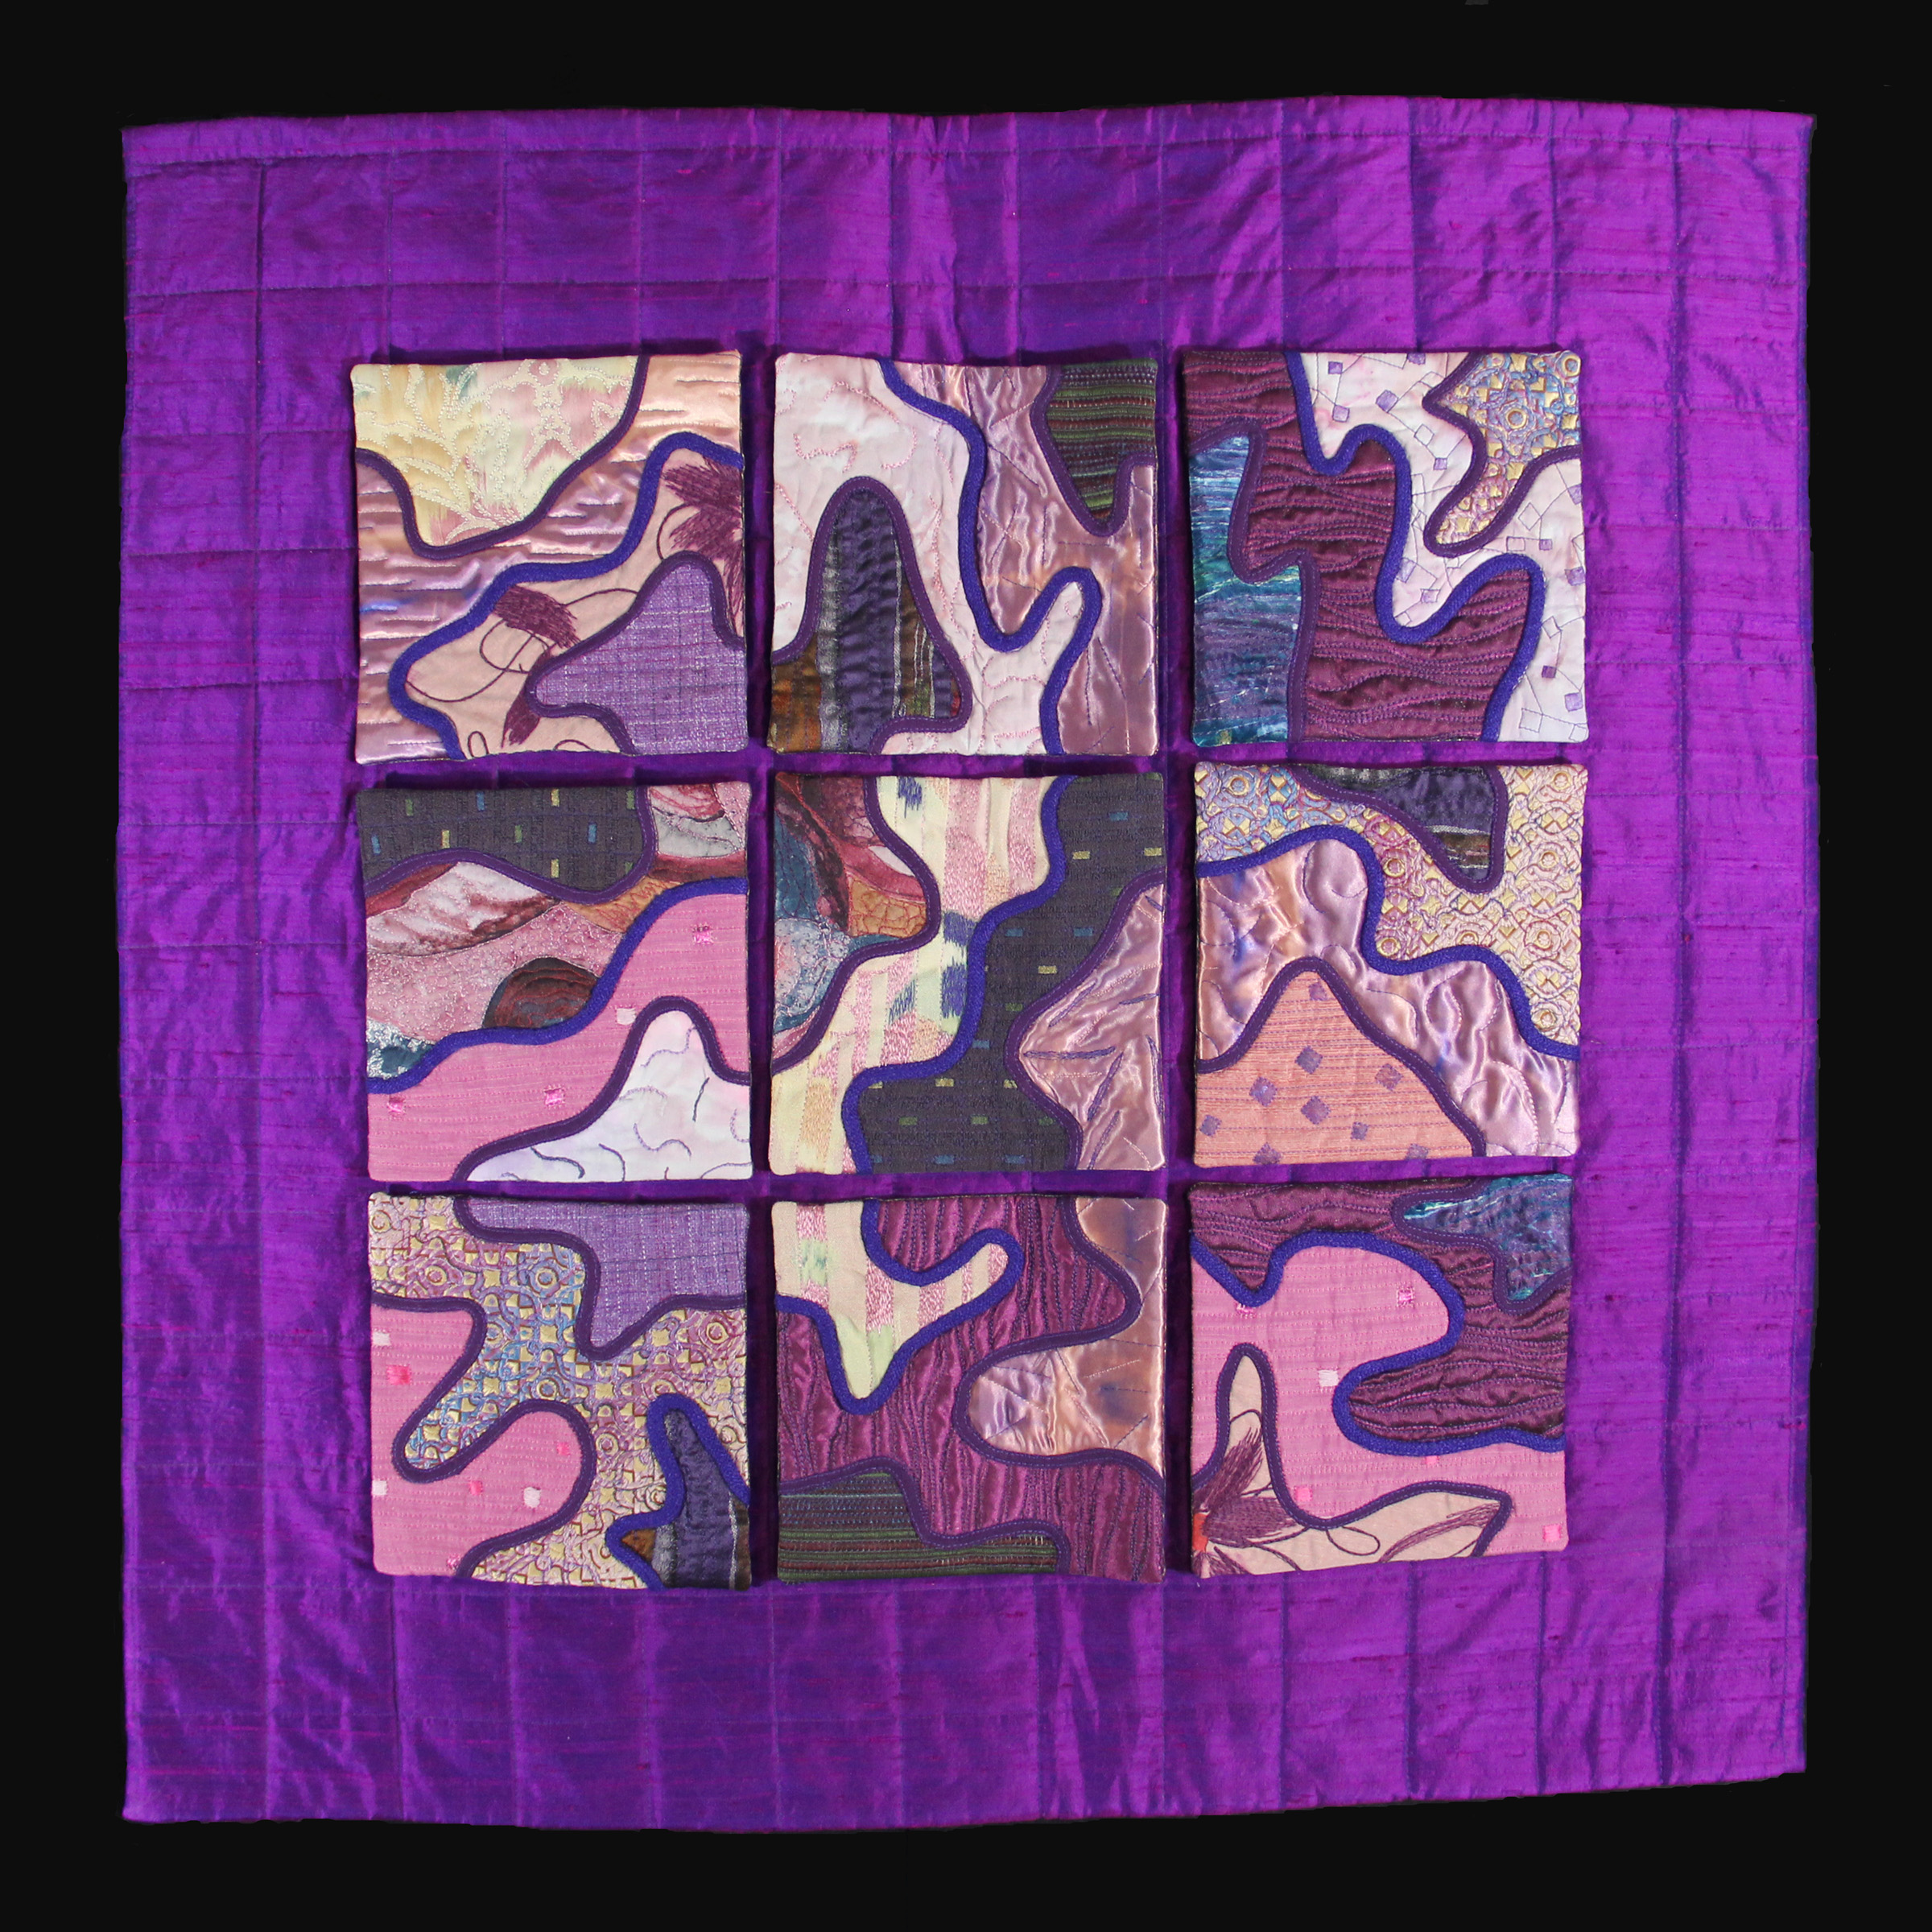 9 individual quiltlets attached by snaps that can be moved to other locations allowing lines to be connected differently